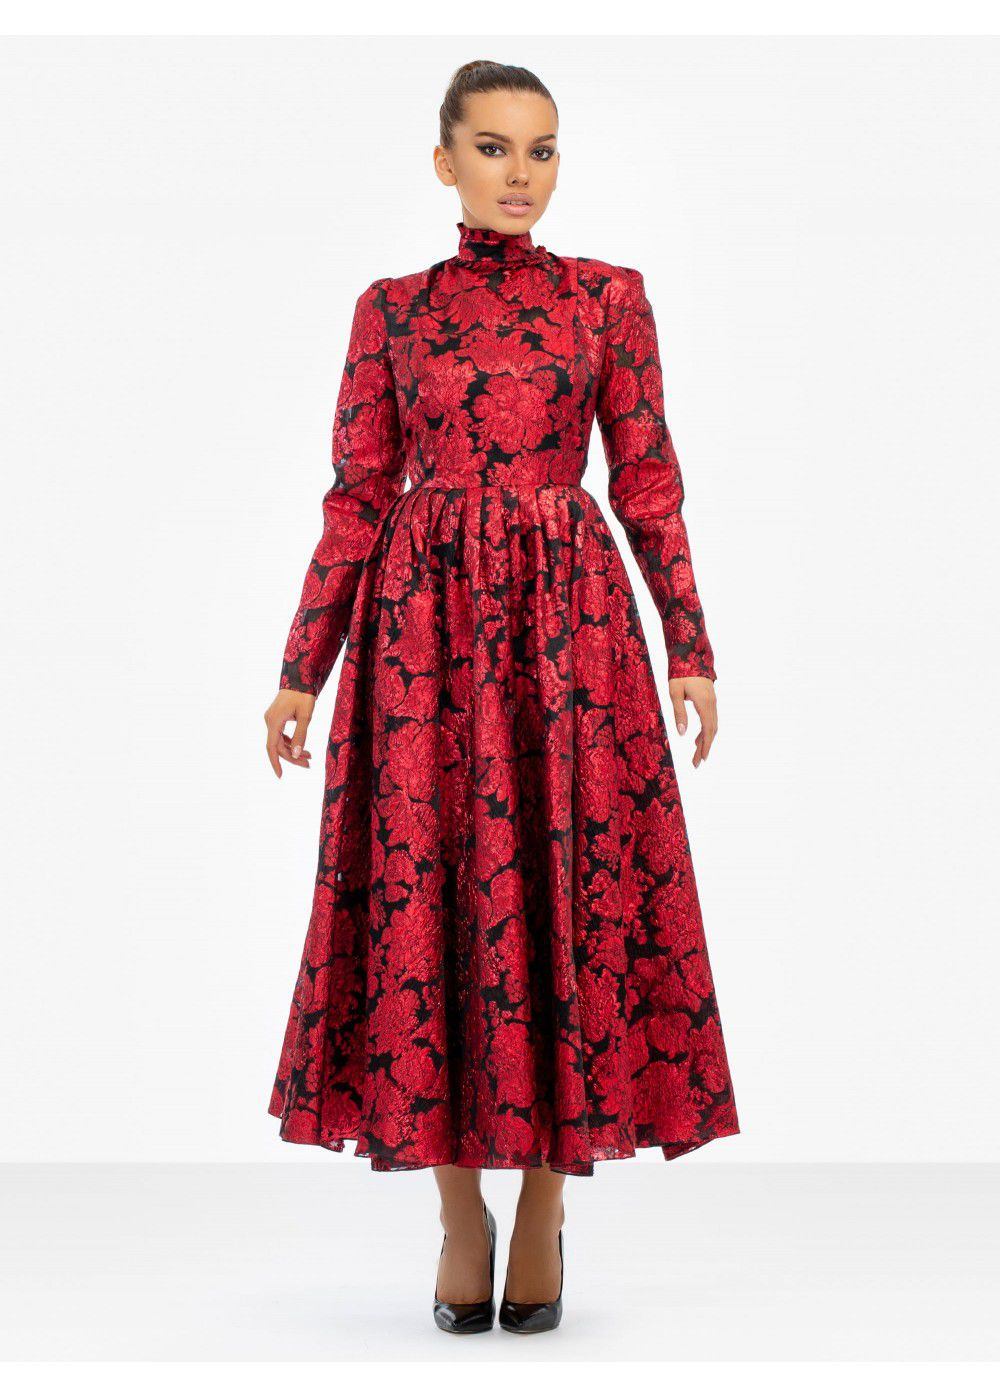 Erdem Tedora Metallic-Floral Silk-Blend Dress